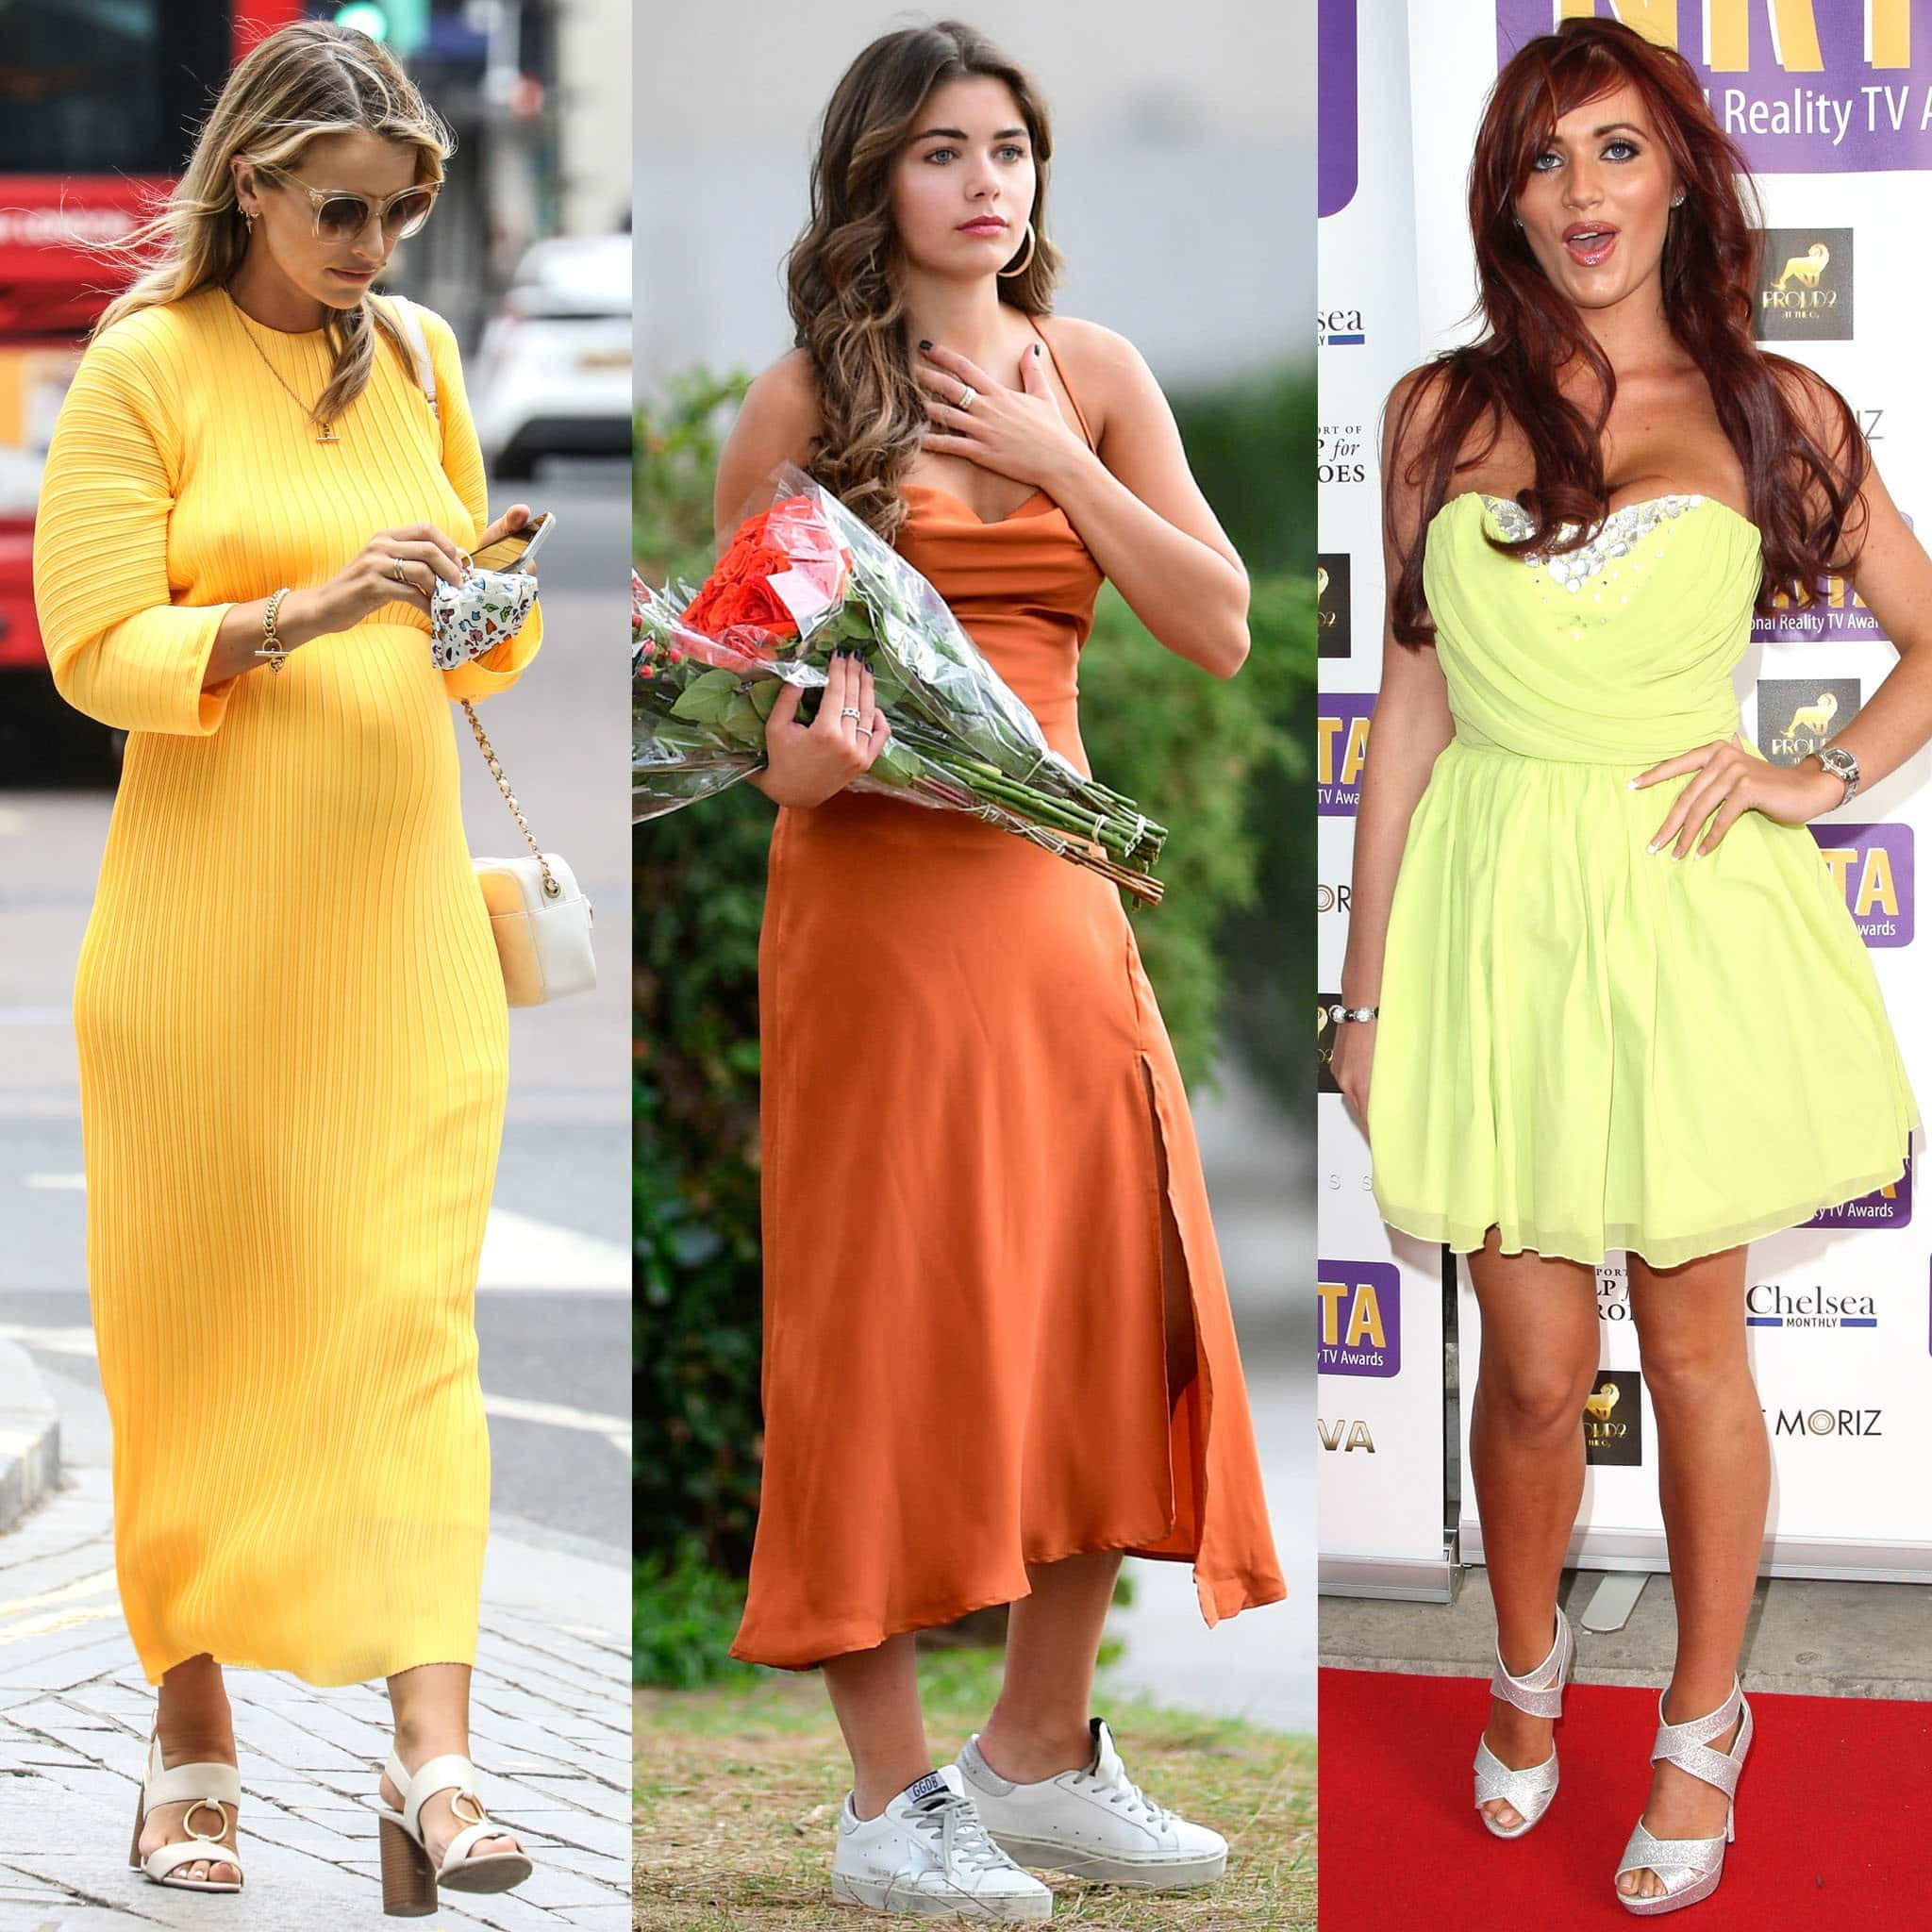 Vogue Williams, Hannah Ann Sluss, and Amy Childs pair their citrus dresses with light-colored shoes